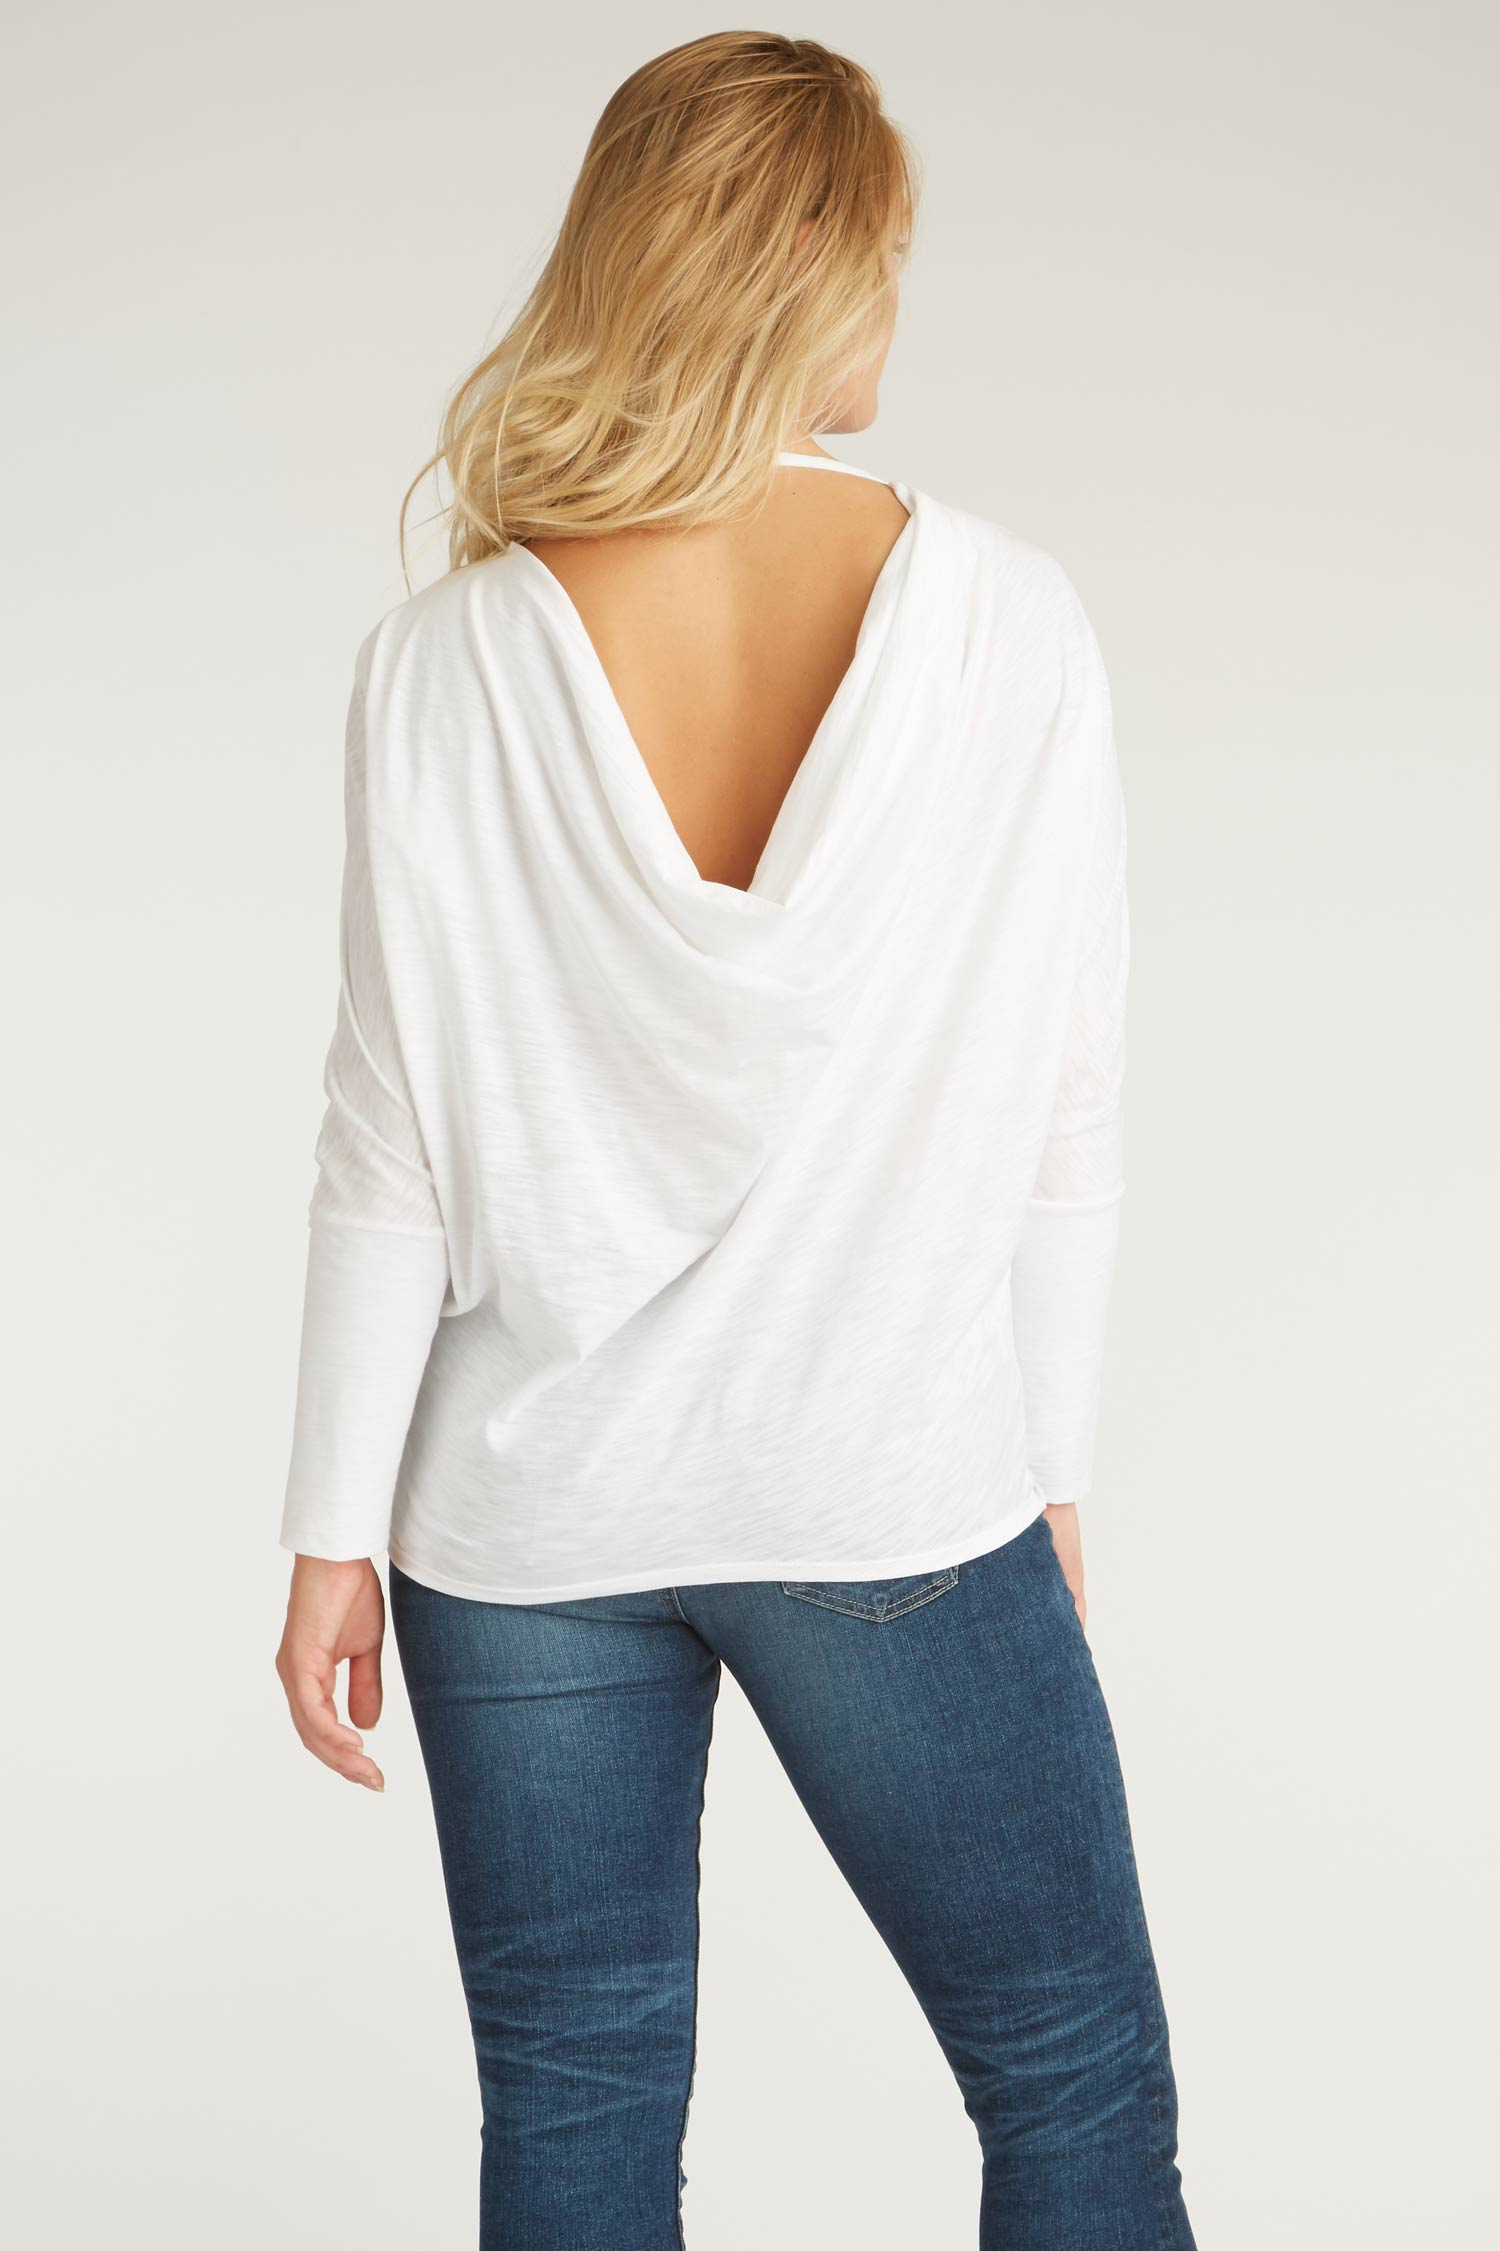 Womens Organic Cotton Top - Reversible Drape Pullover Blouse - White